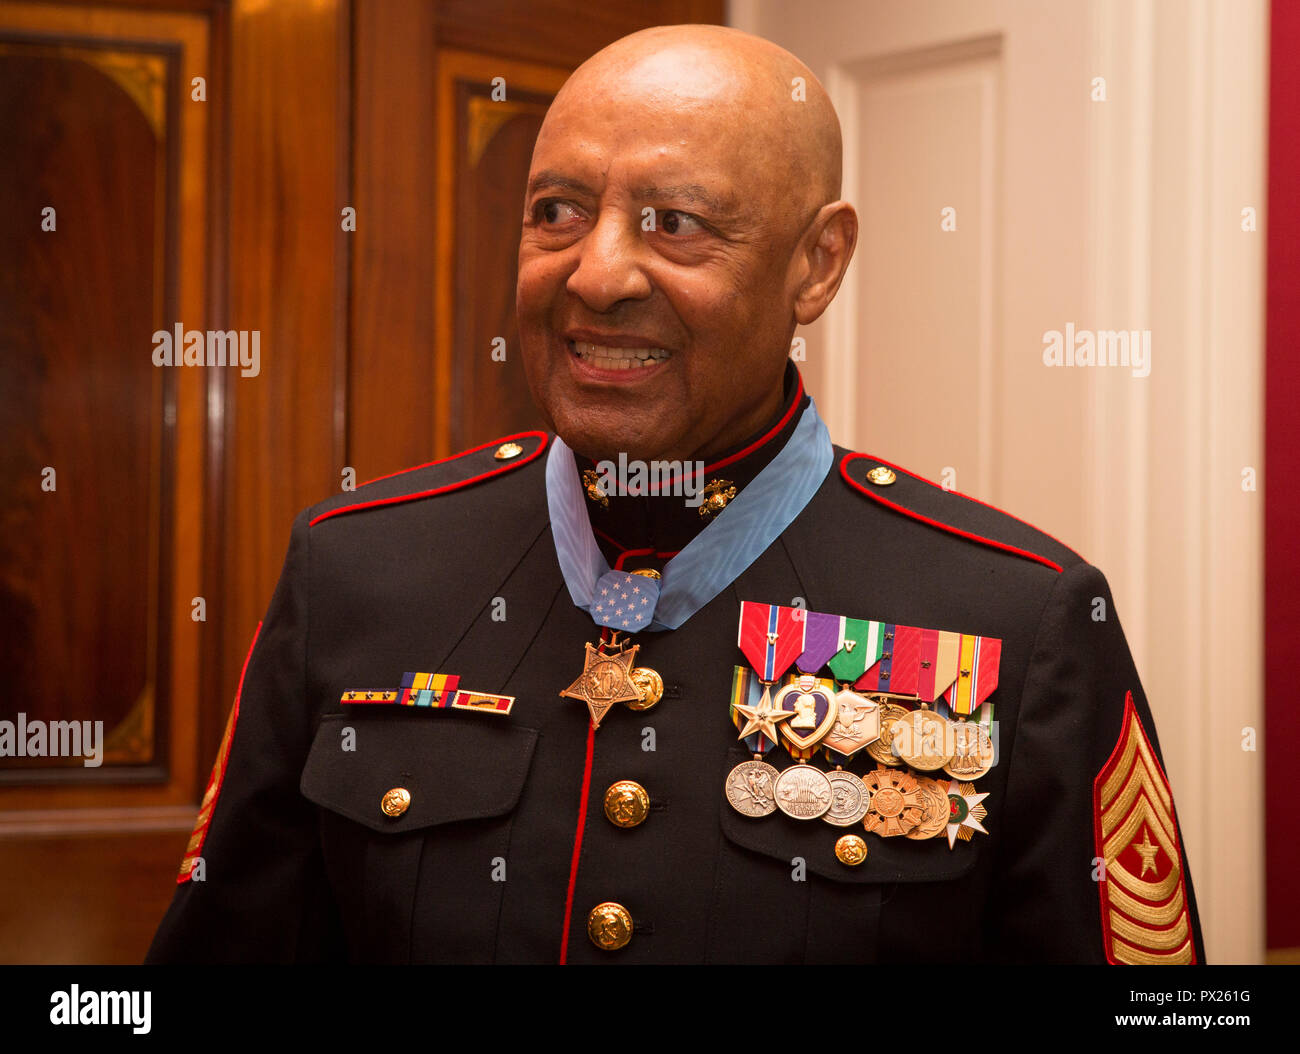 Retired U.S. Marine Corps Sgt. Maj. John L. Canley, the 300th Marine Medal of Honor recipient, attends a reception after the Medal of Honor ceremony at the White House in Washington, D.C., Oct. 17, 2018. From Jan. 31, to Feb. 6 1968 in the Republic of Vietnam, Canley, the company gunnery sergeant assigned to Alpha Company, 1st Battalion, 1st Marines, took command of the company, led multiple attacks against enemy-fortified positions, rushed across fire-swept terrain despite his own wounds and carried wounded Marines into Hue City, including his commanding officer, to relieve friendly forces wh Stock Photo